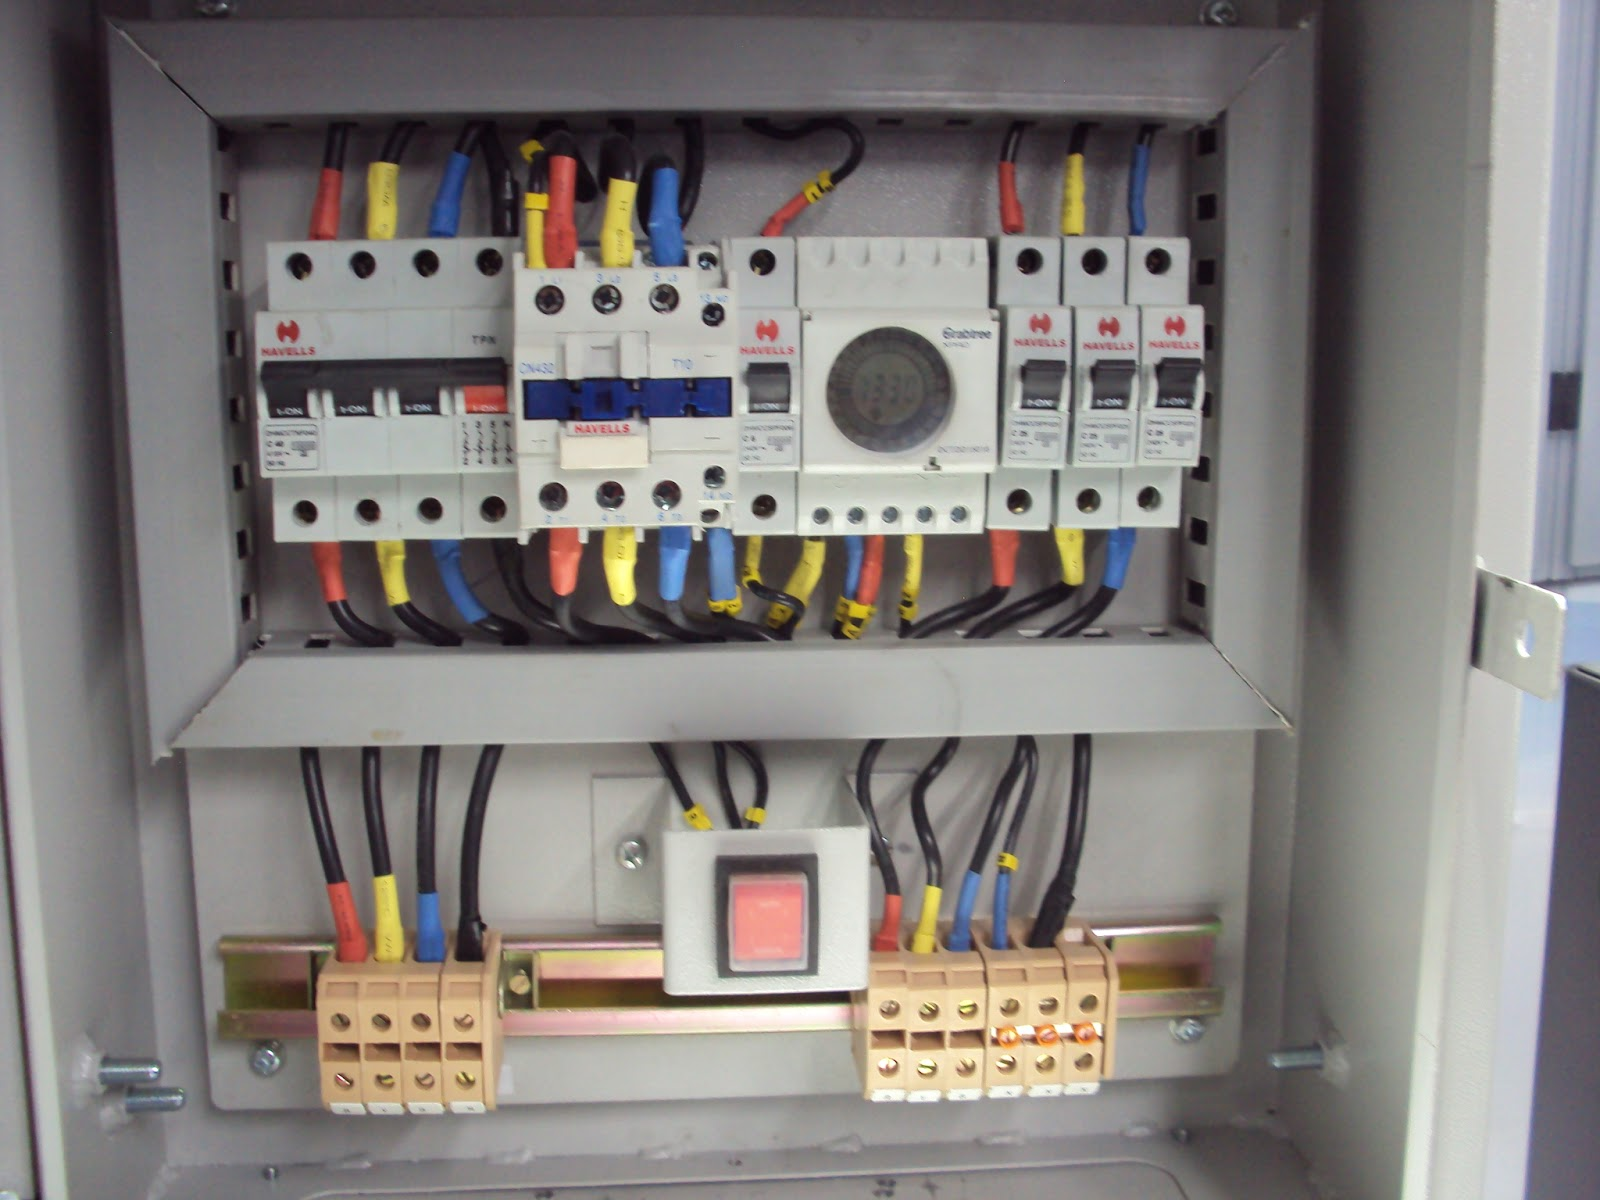 Super Power Engineering Electrical Wiring And Test Certificate Wiring Digital Resources Apanbouhousnl